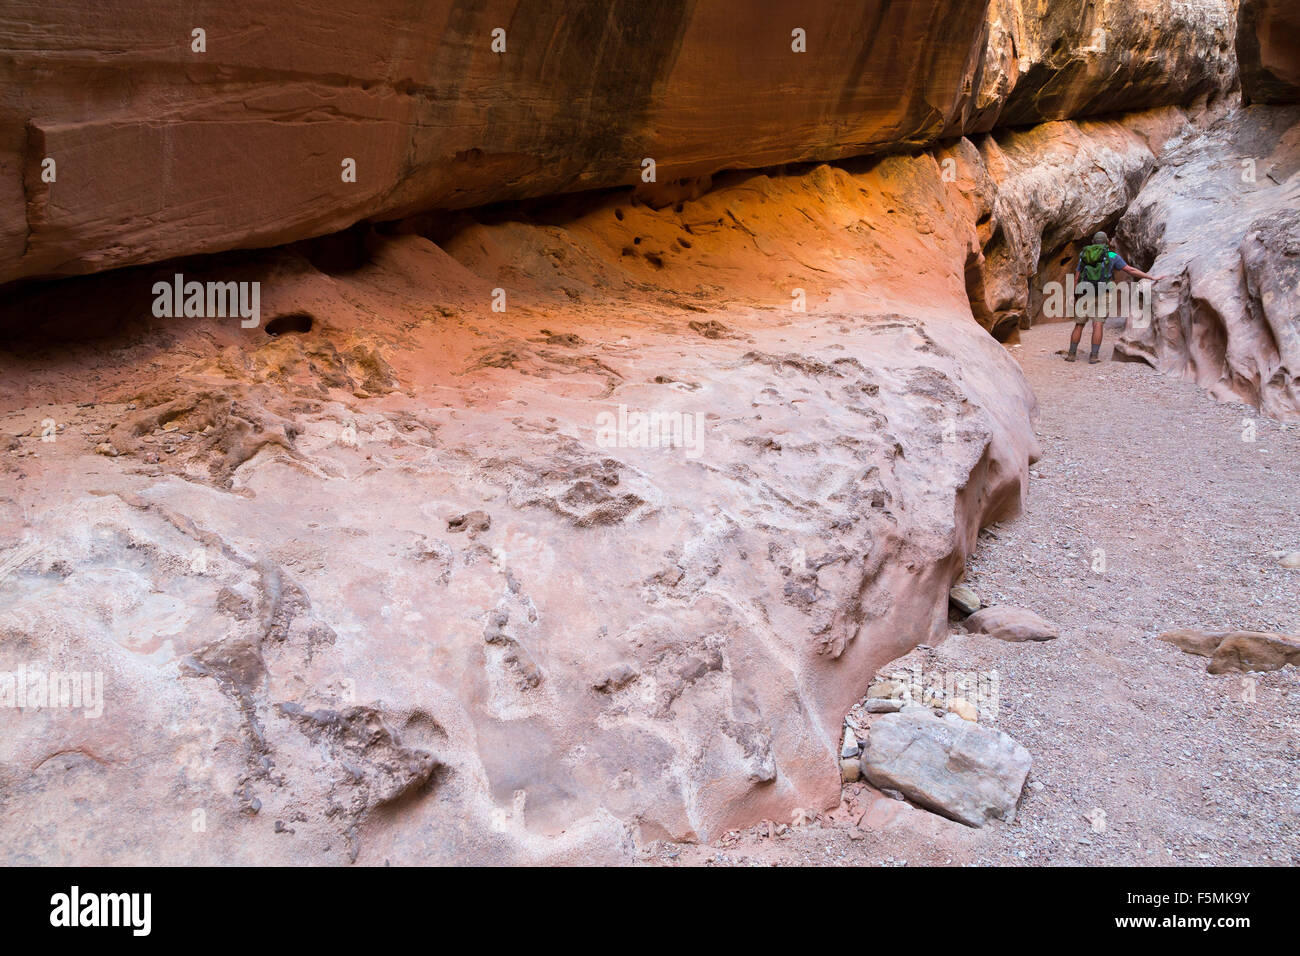 A hiker passing through a large opening in a slot canyon in Little Wild Horse Canyon, San Rafael Swell, Utah Stock Photo